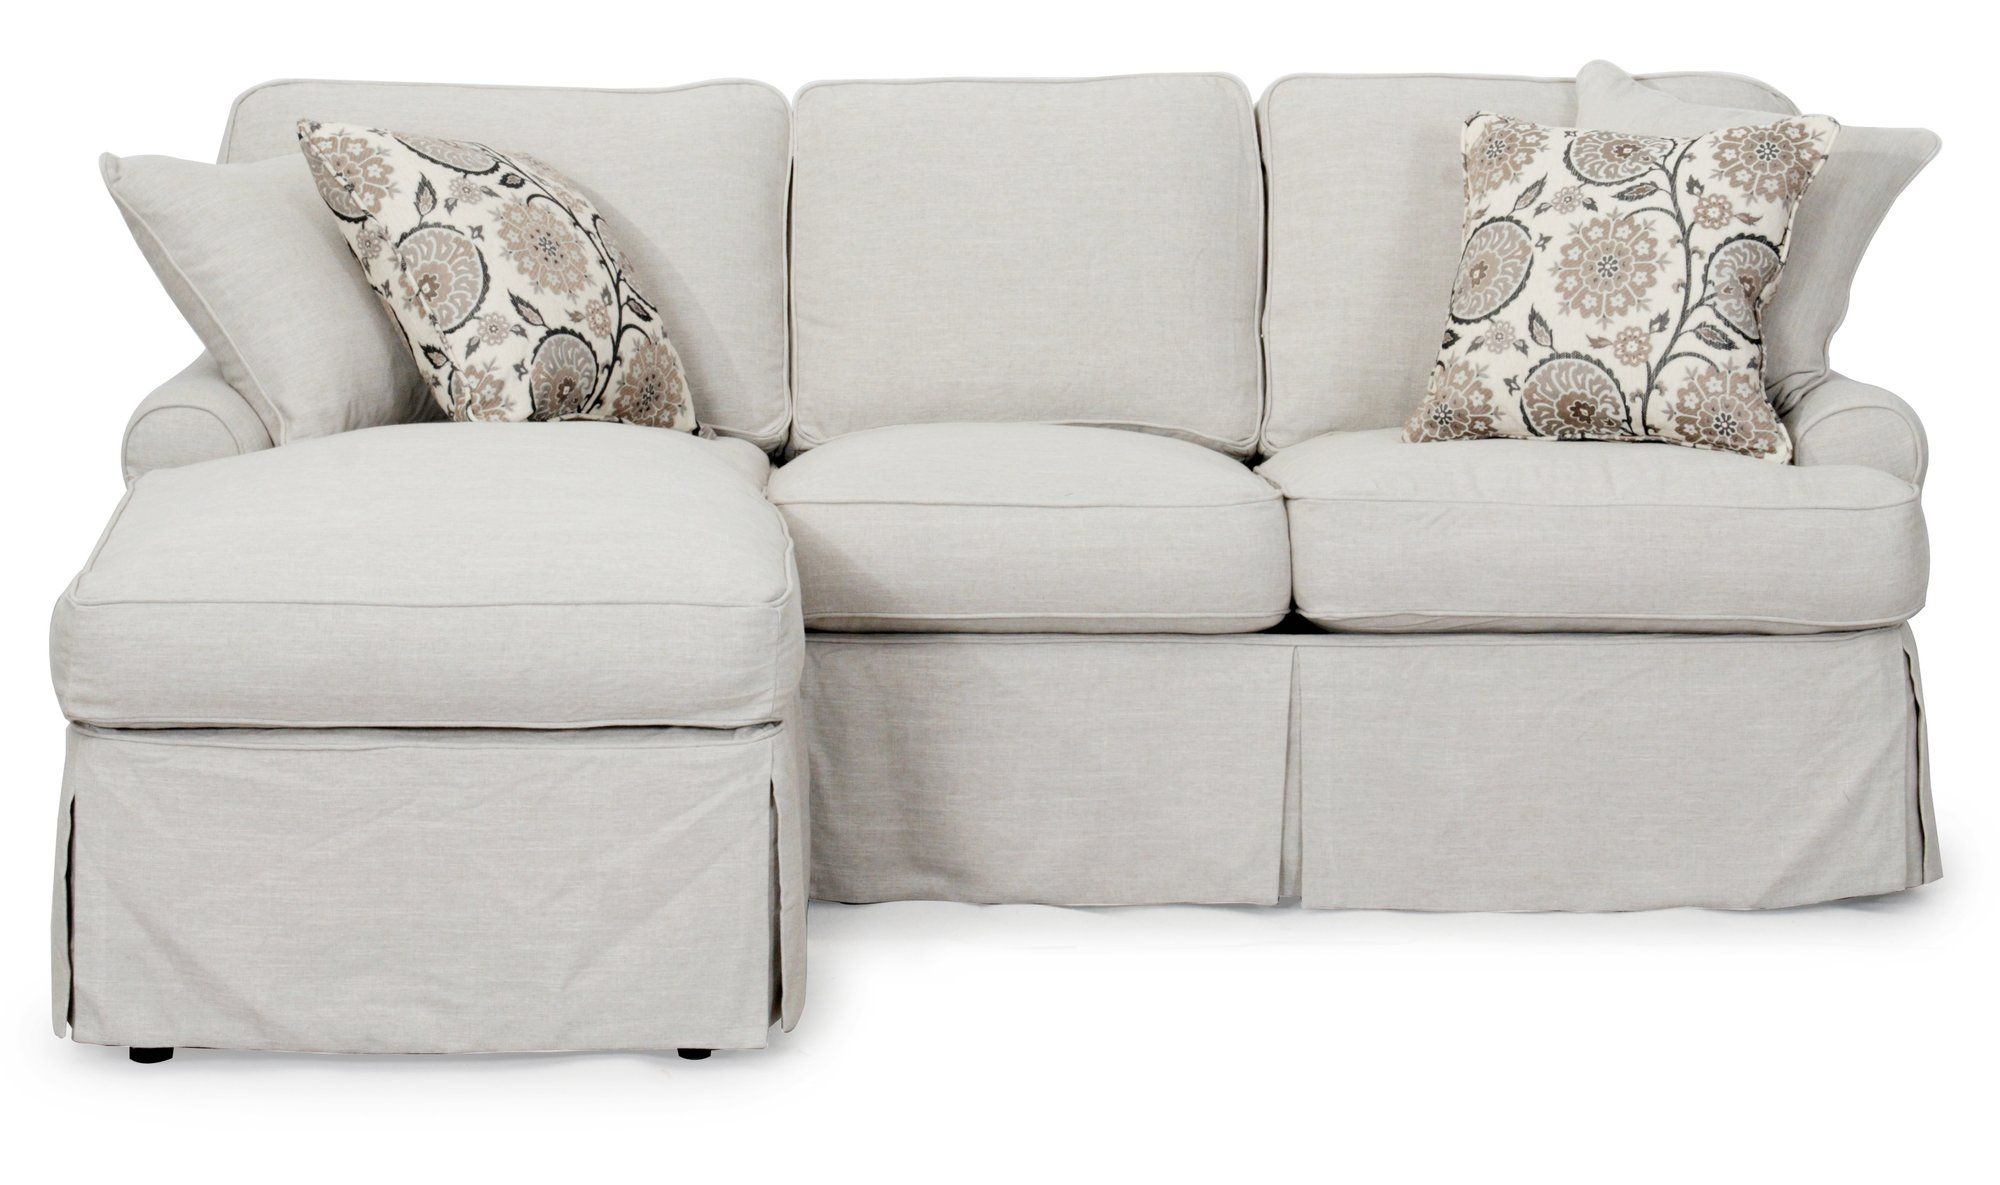 Callie T Cushion Slipcover With Images Cushions On Sofa